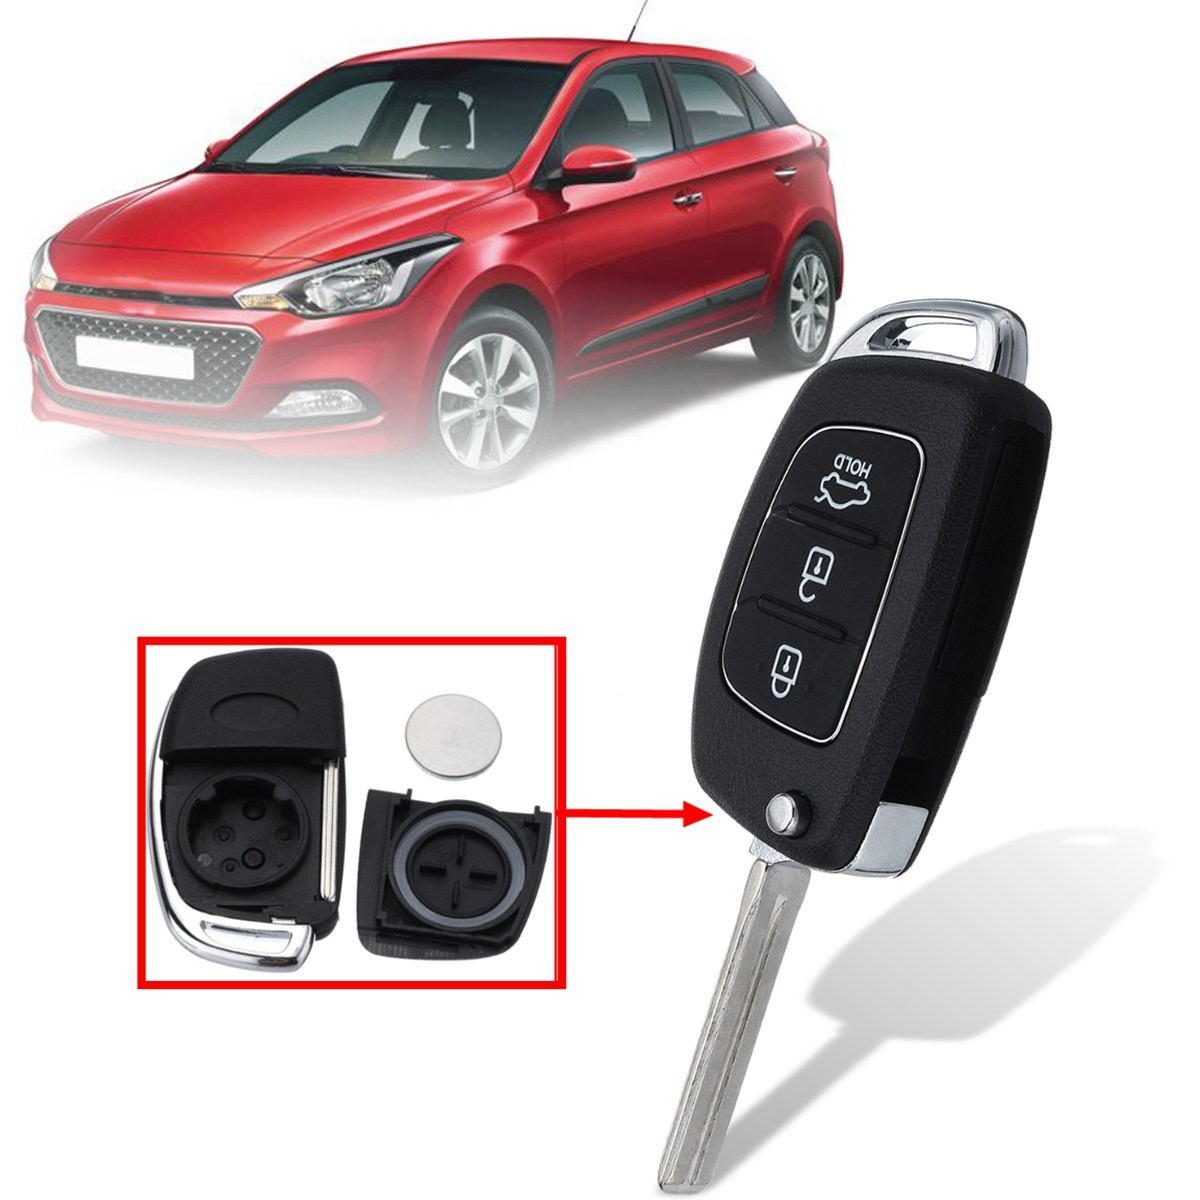 3 Buttons Car Remote Flip Key Fob Case Shell with Battery For Hyundai Santa Fe IX35 i20 2013 2014